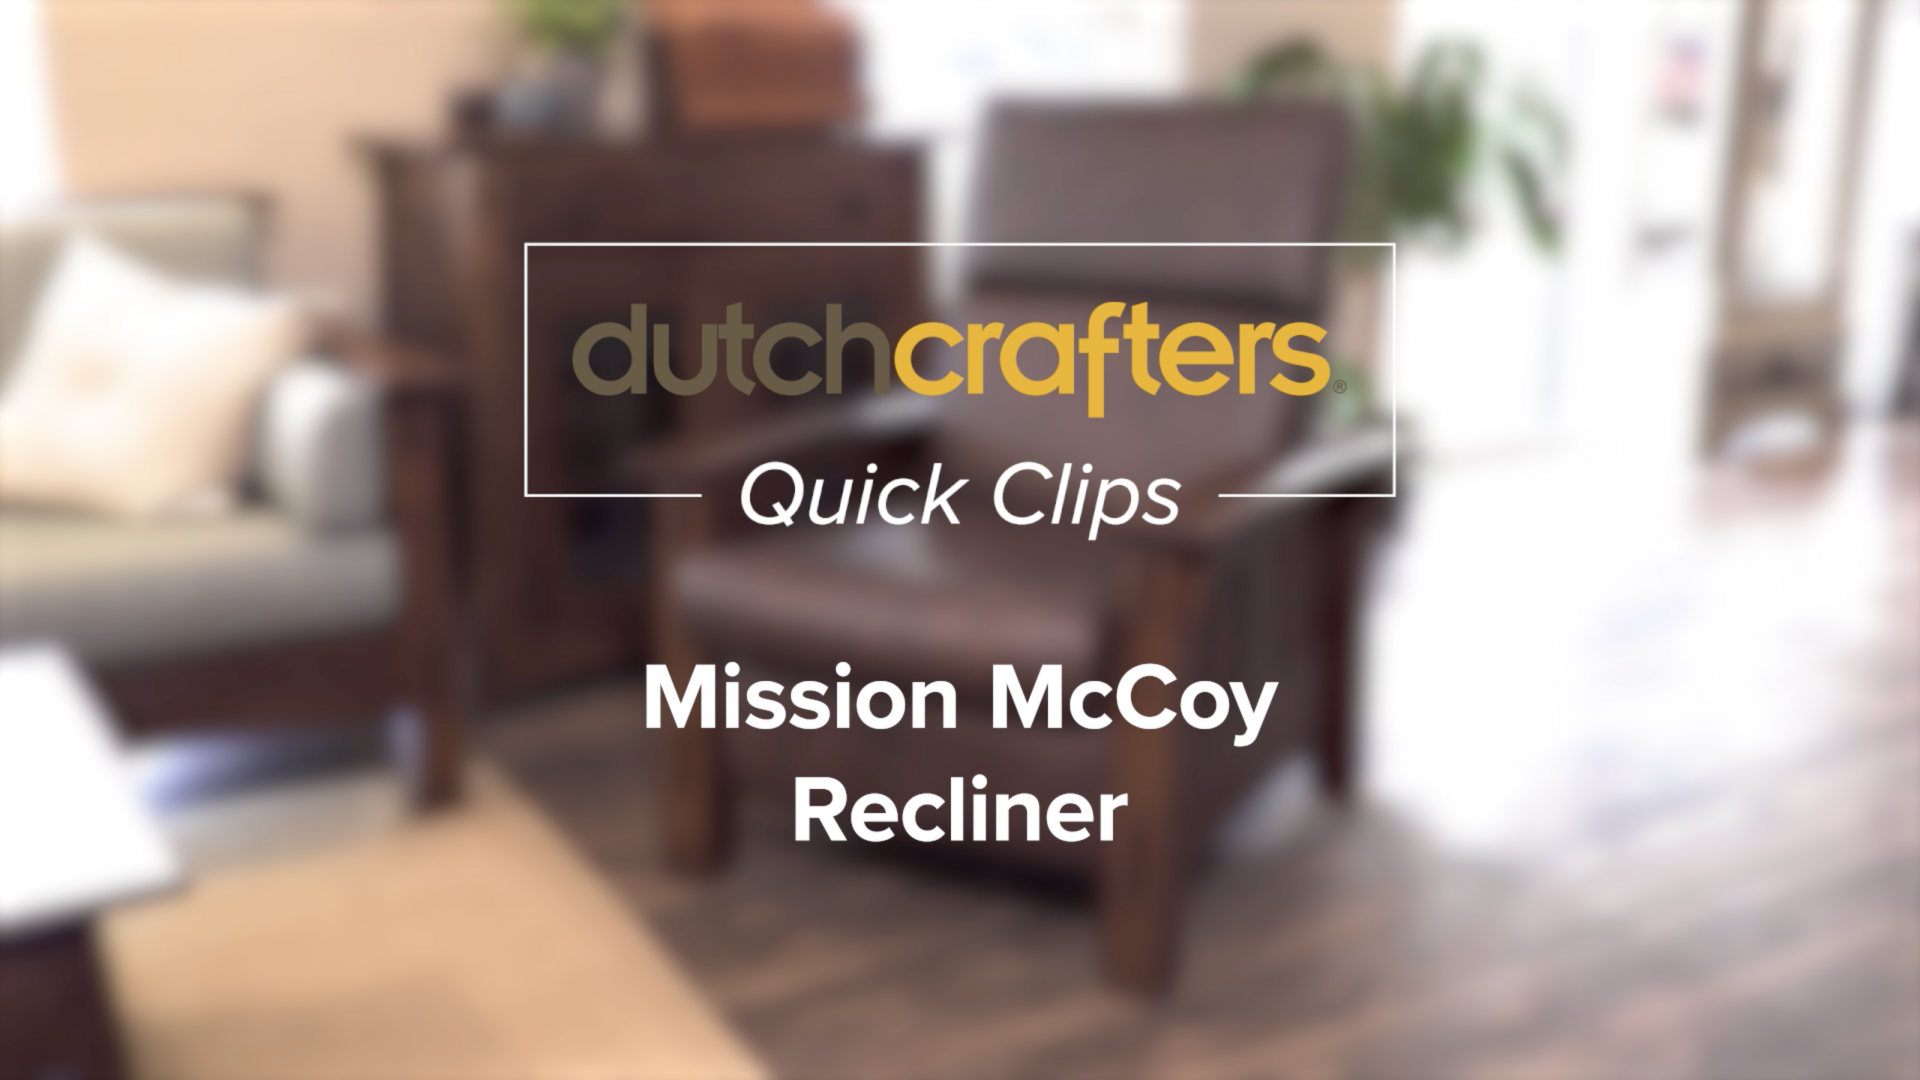 Mission McCoy Power Recliner Title Screen